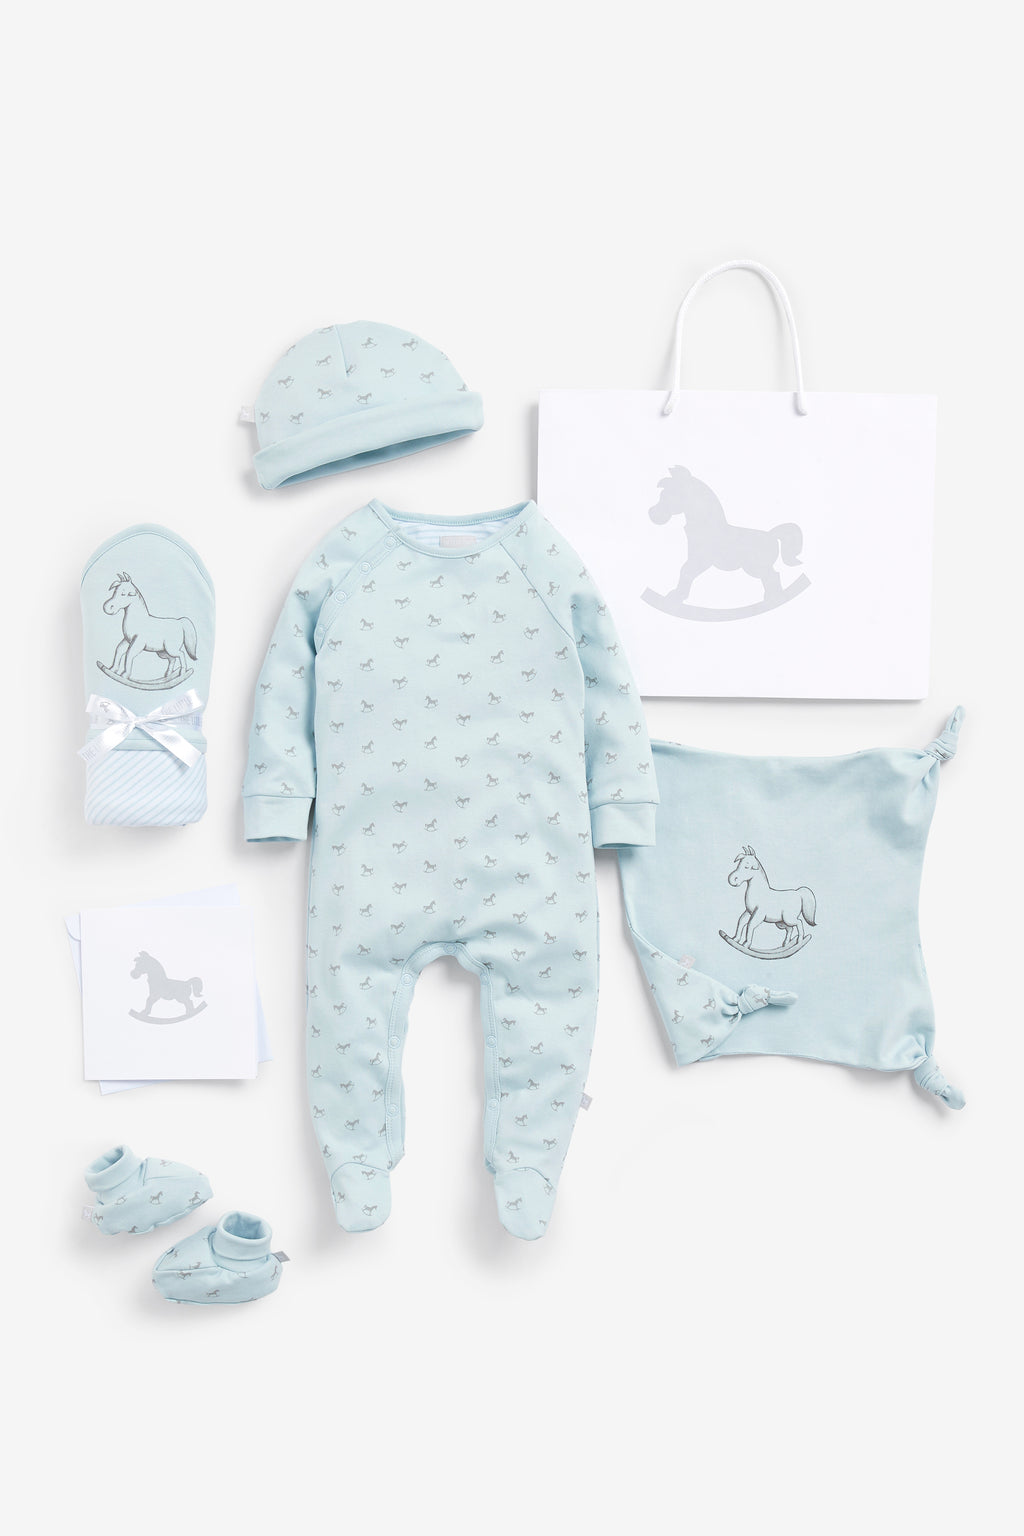 Super Soft Jersey Sleep Suit, Hat, Blanket, Comforter And Booties Gift Set - blue